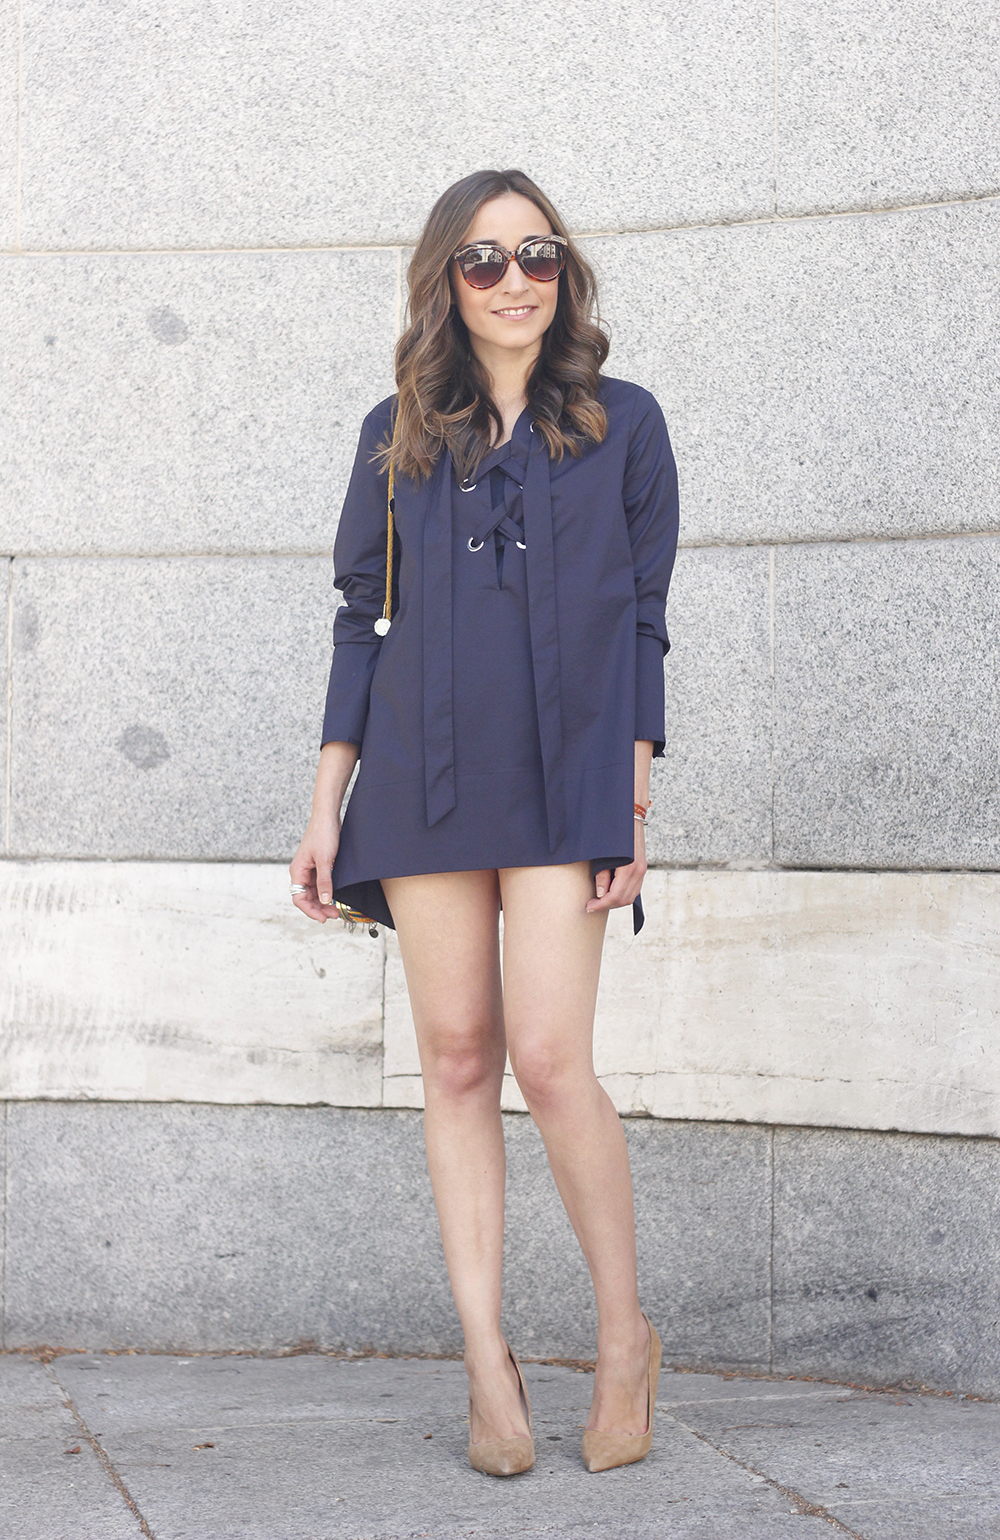 lace up blouse denim shorts nude heels clutch sunnies outfit style fashion02